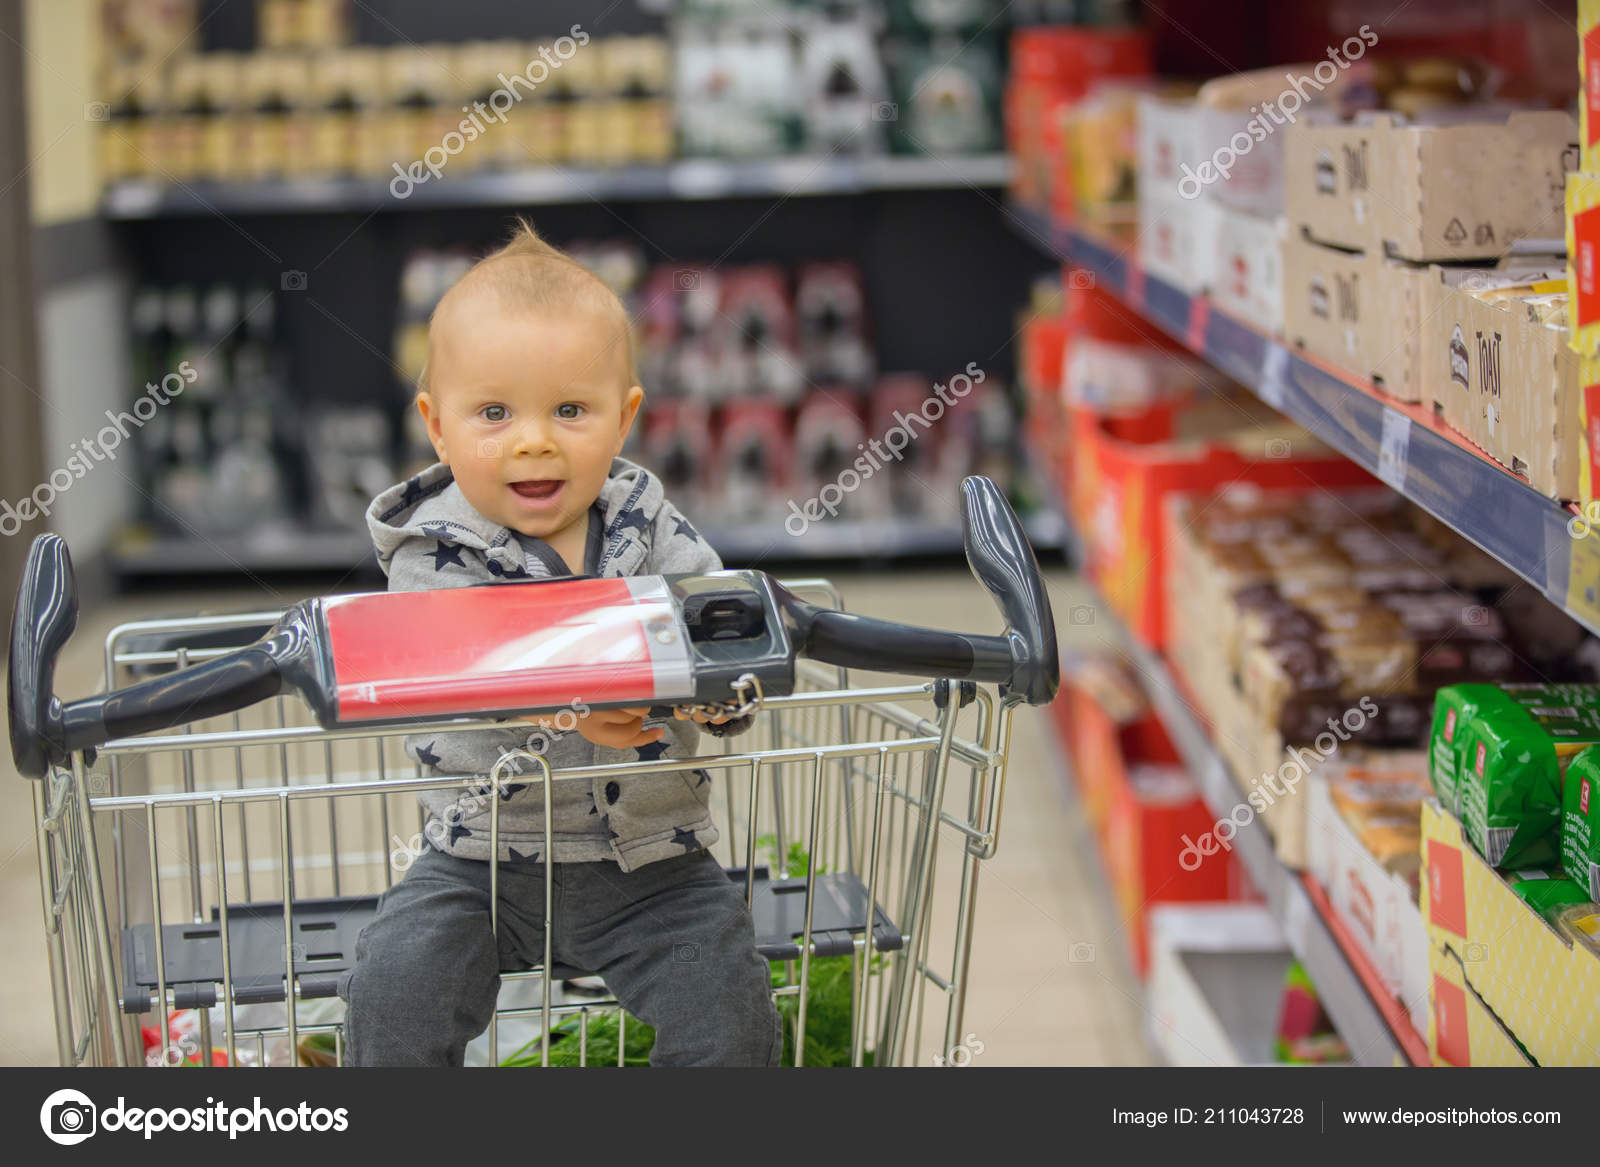 b55f5463a Toddler Baby Boy Sitting Shopping Cart Grocery Store Smiling Eating ...